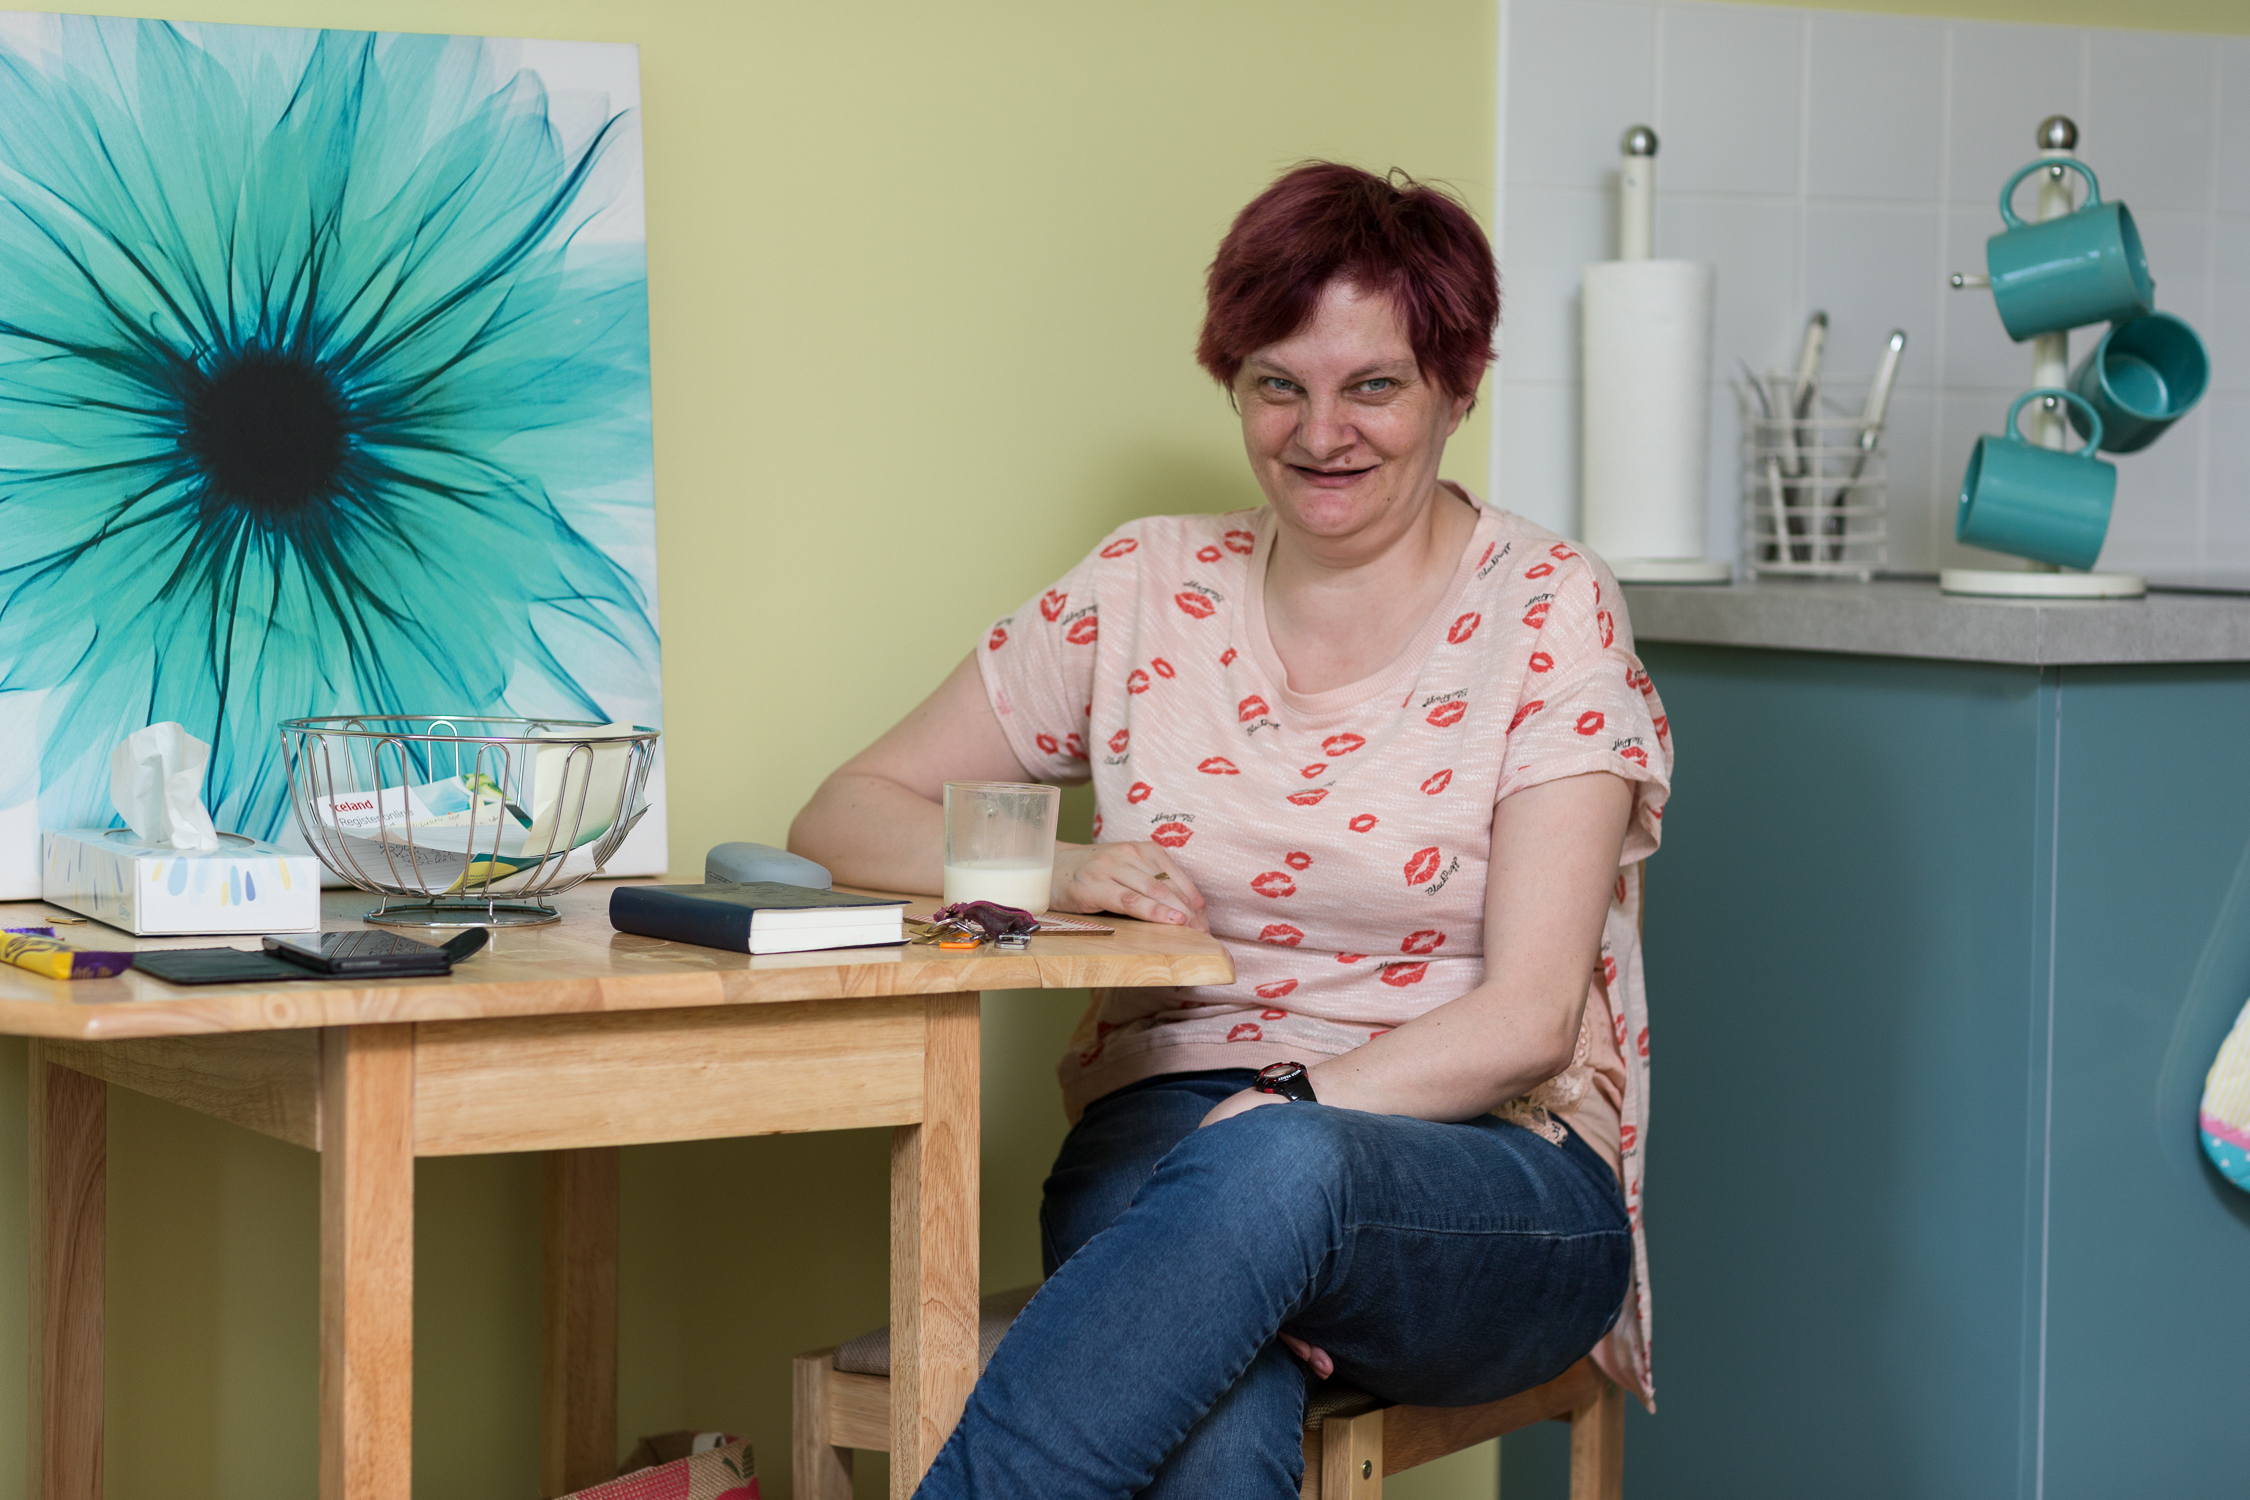 Female customer in her kitchen, in a Look Ahead service